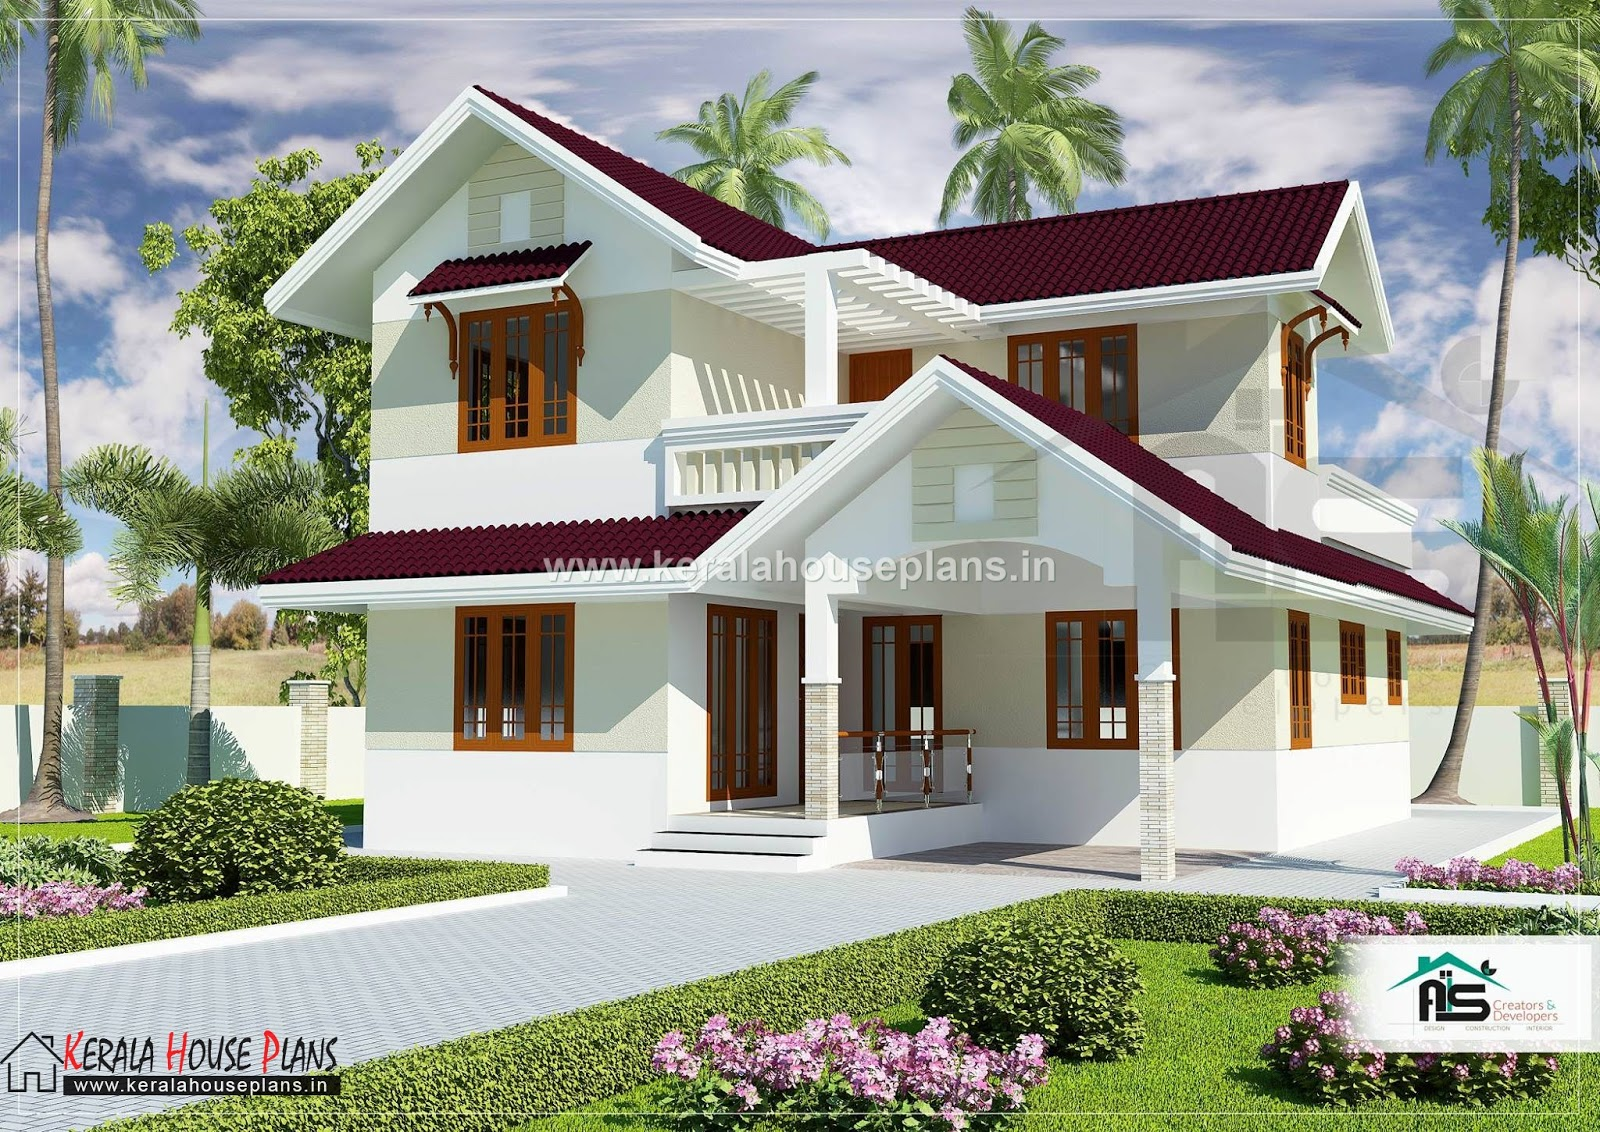 Kerala model house plans with elevation 1829 sqft kerala for House plans kerala model photos